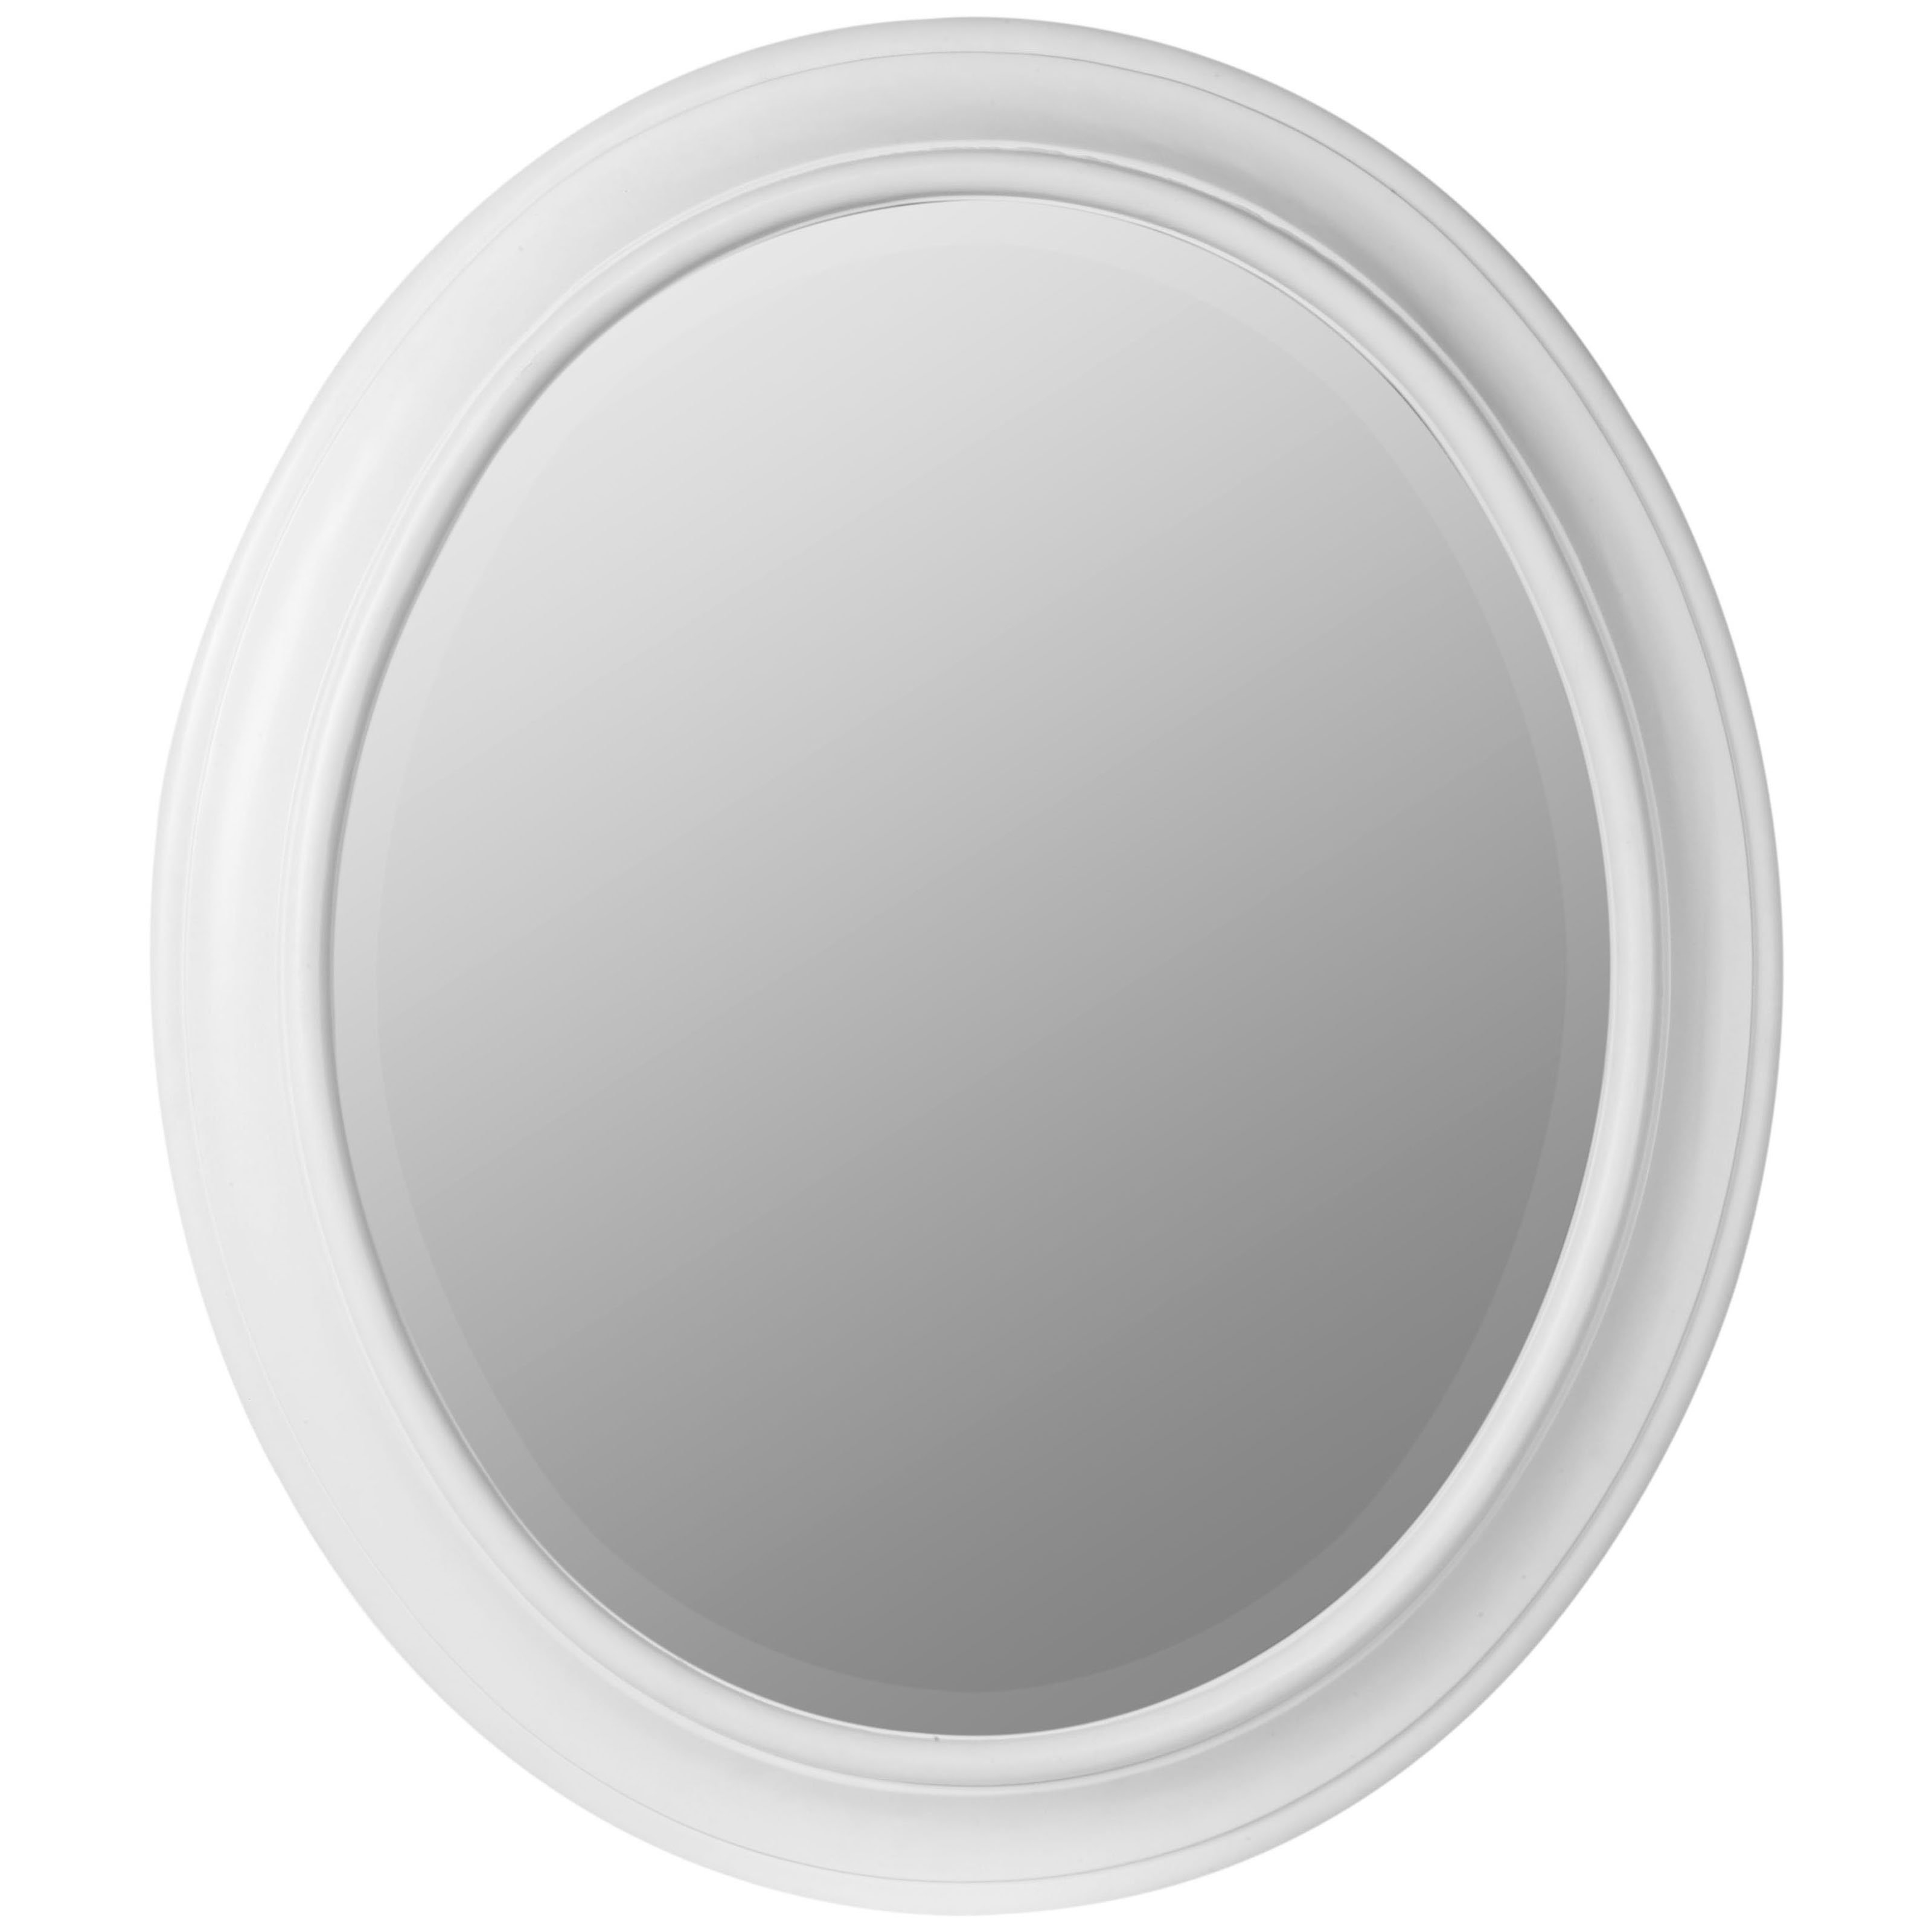 Belham Living Queen Anne Oval Wall Mirror Glossy White Mirrors Within White Oval Mirrors (Image 2 of 15)